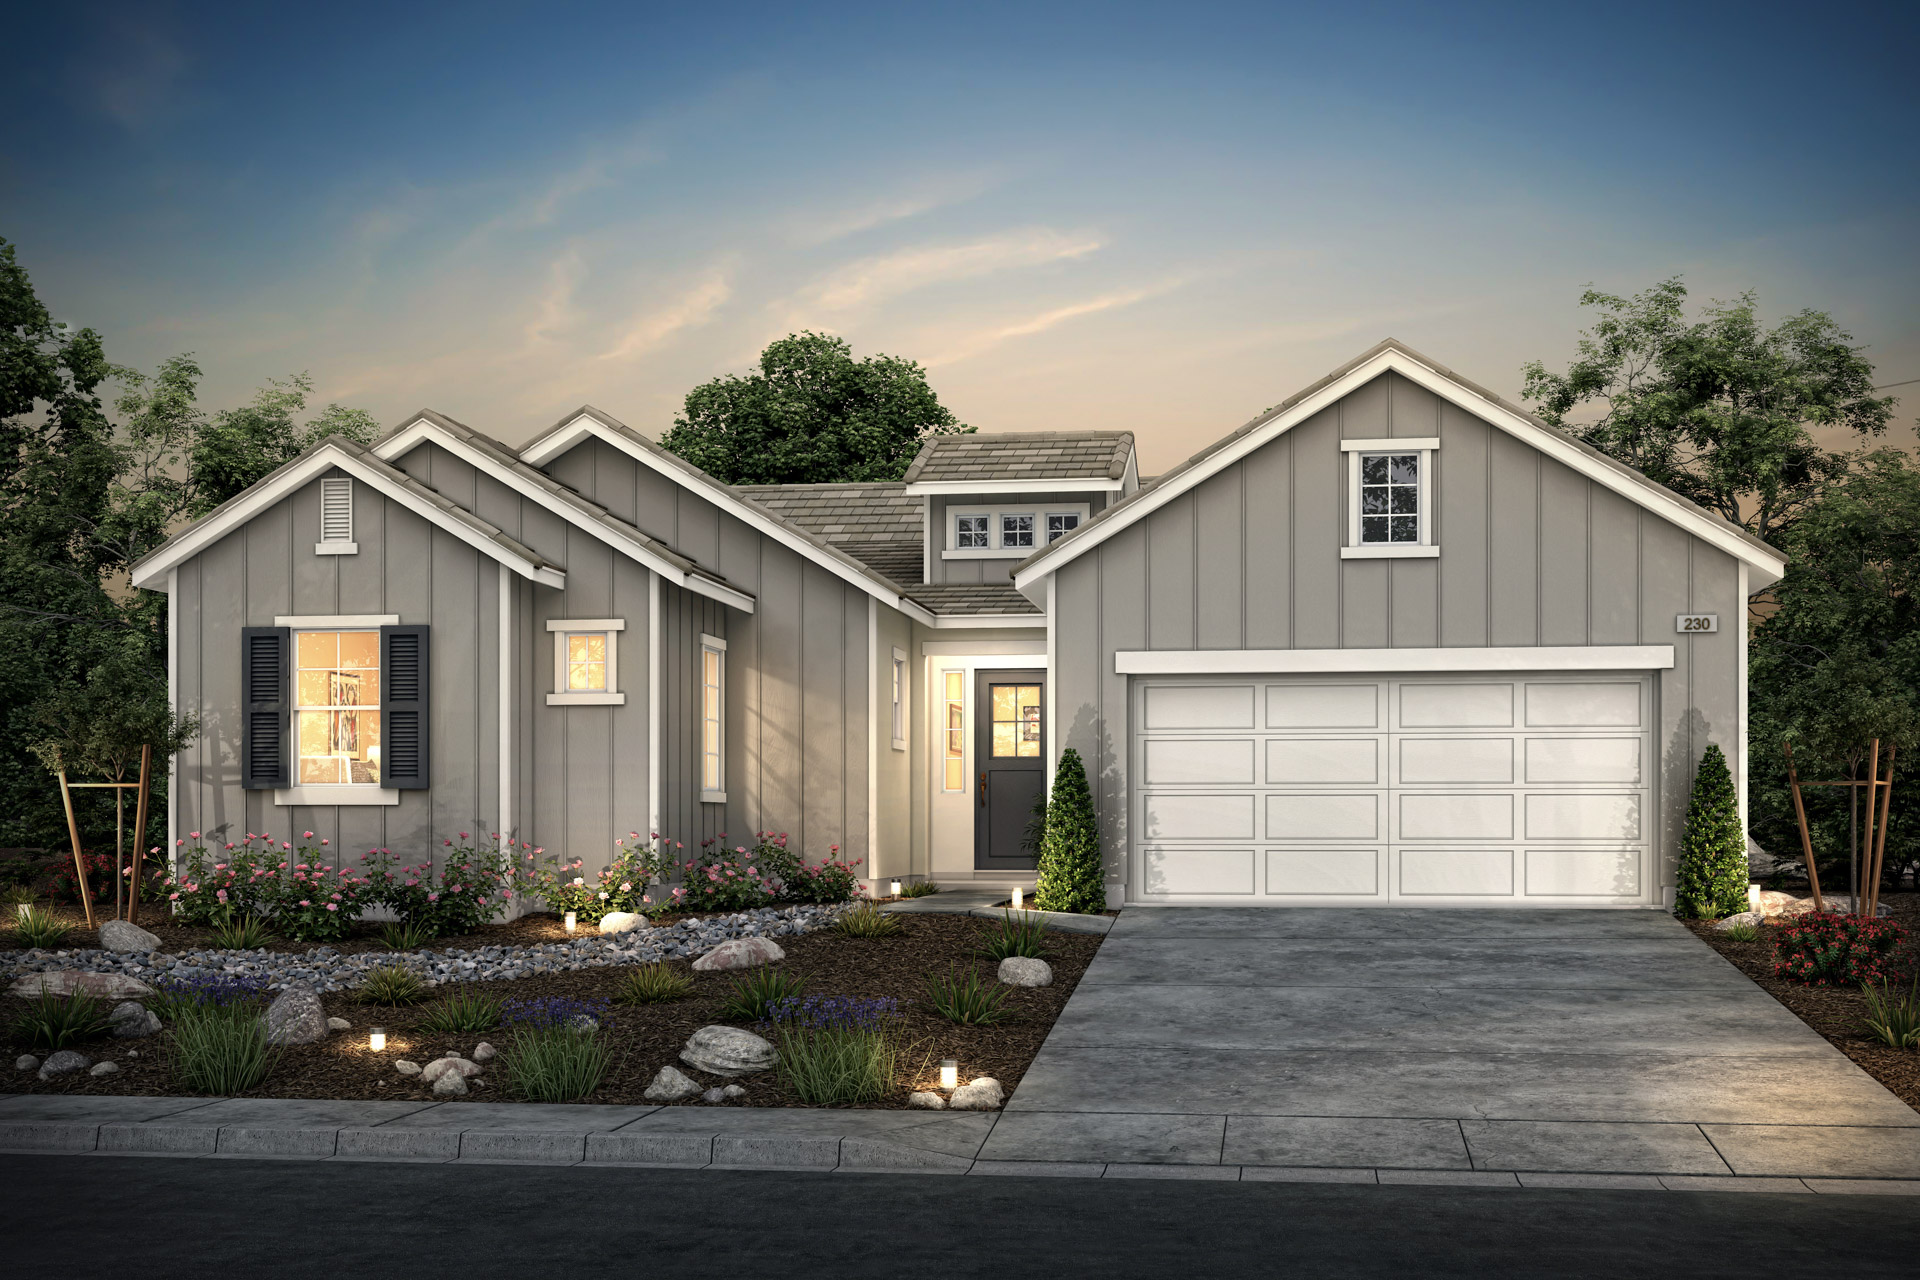 In Less Than 24 Hours, Over 68% Sold Out At DeYoung RidgeView Final Phase, After Successful Virtual Grand Opening Event